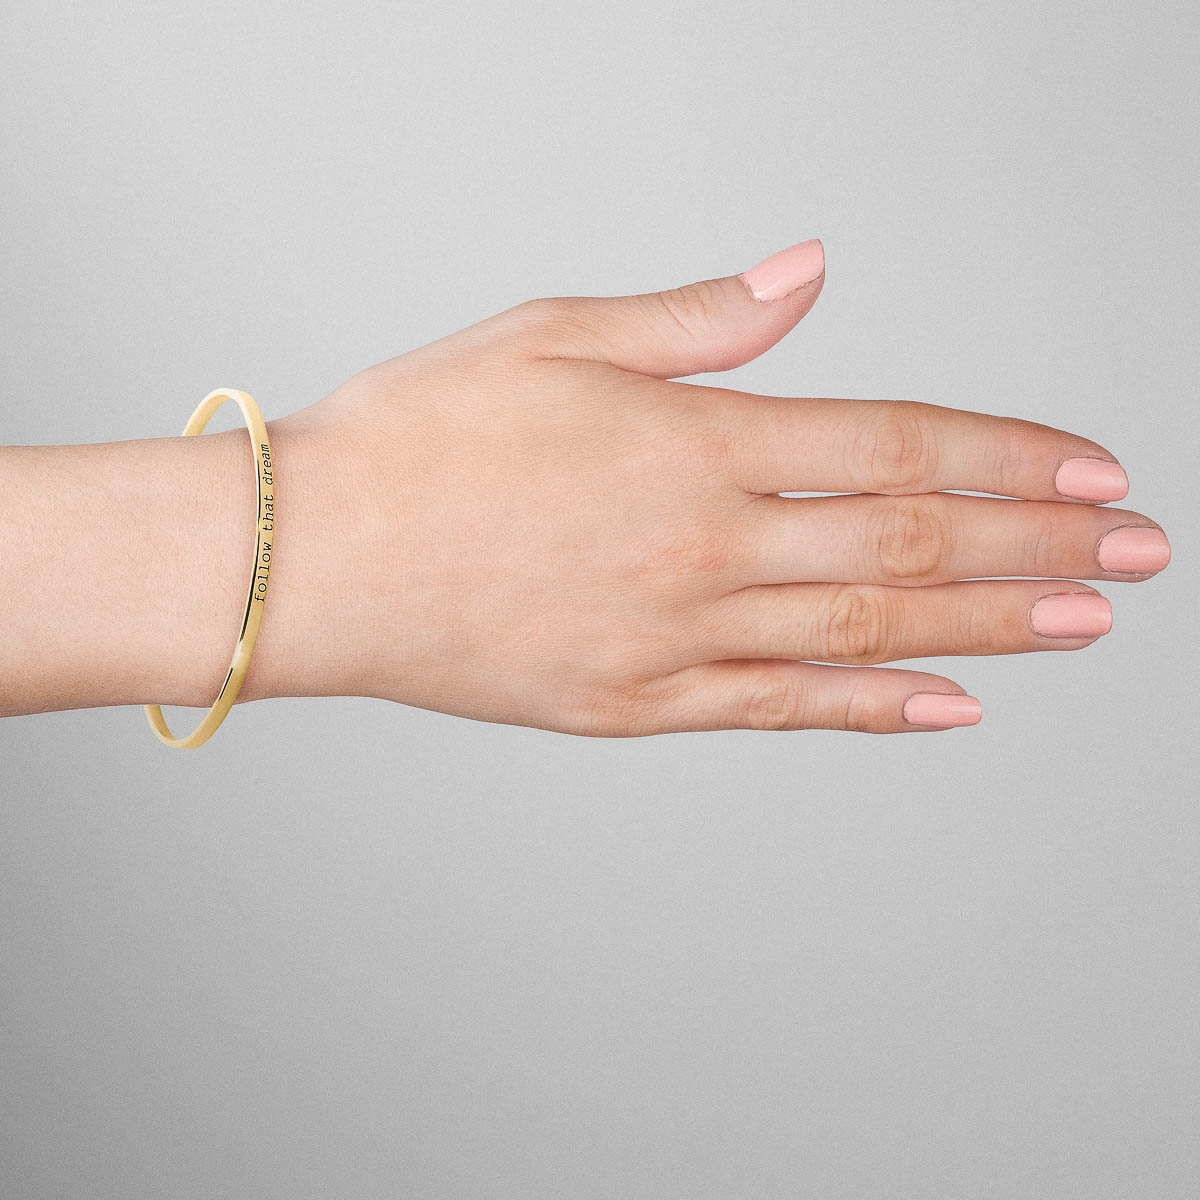 follow-that-dream-cuff-silver-or-gold-plated-3